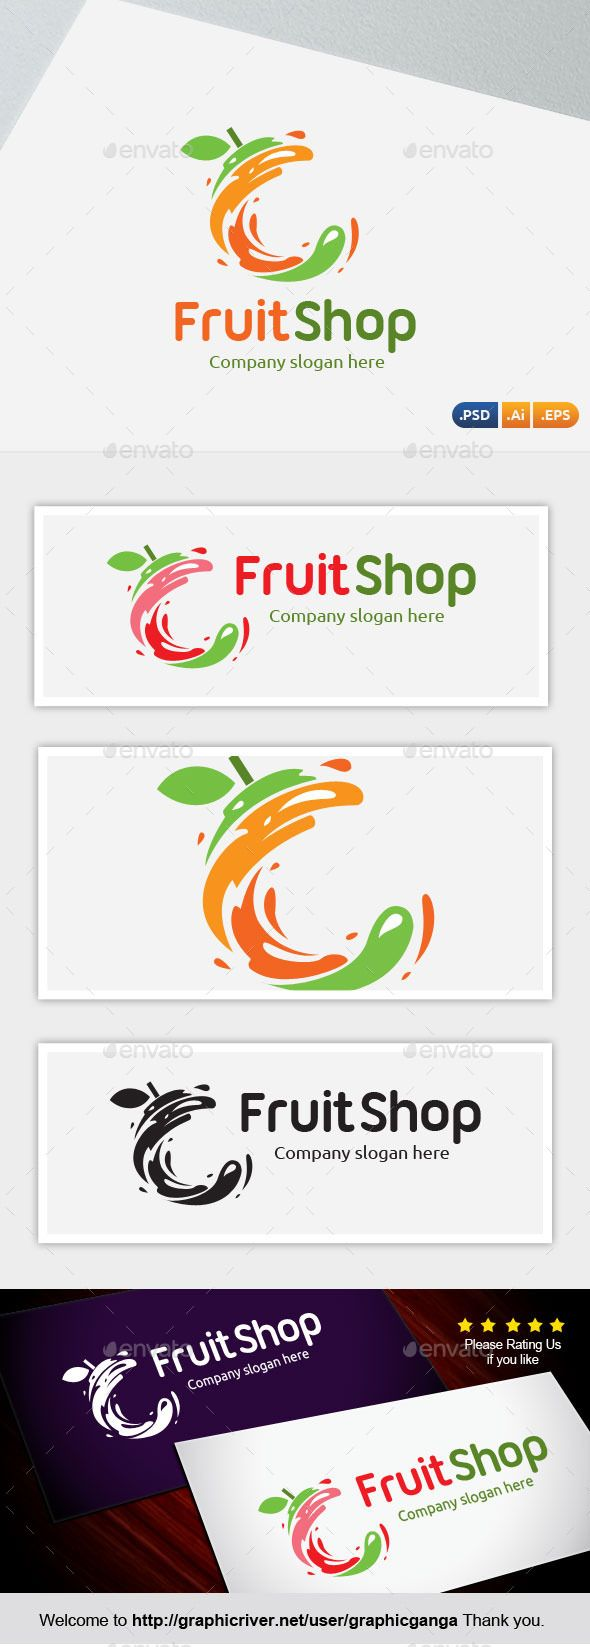 Fruit Shop Logo Template #design #logotype Download: http://graphicriver.net/item/fruit-shop/11929869?ref=ksioks